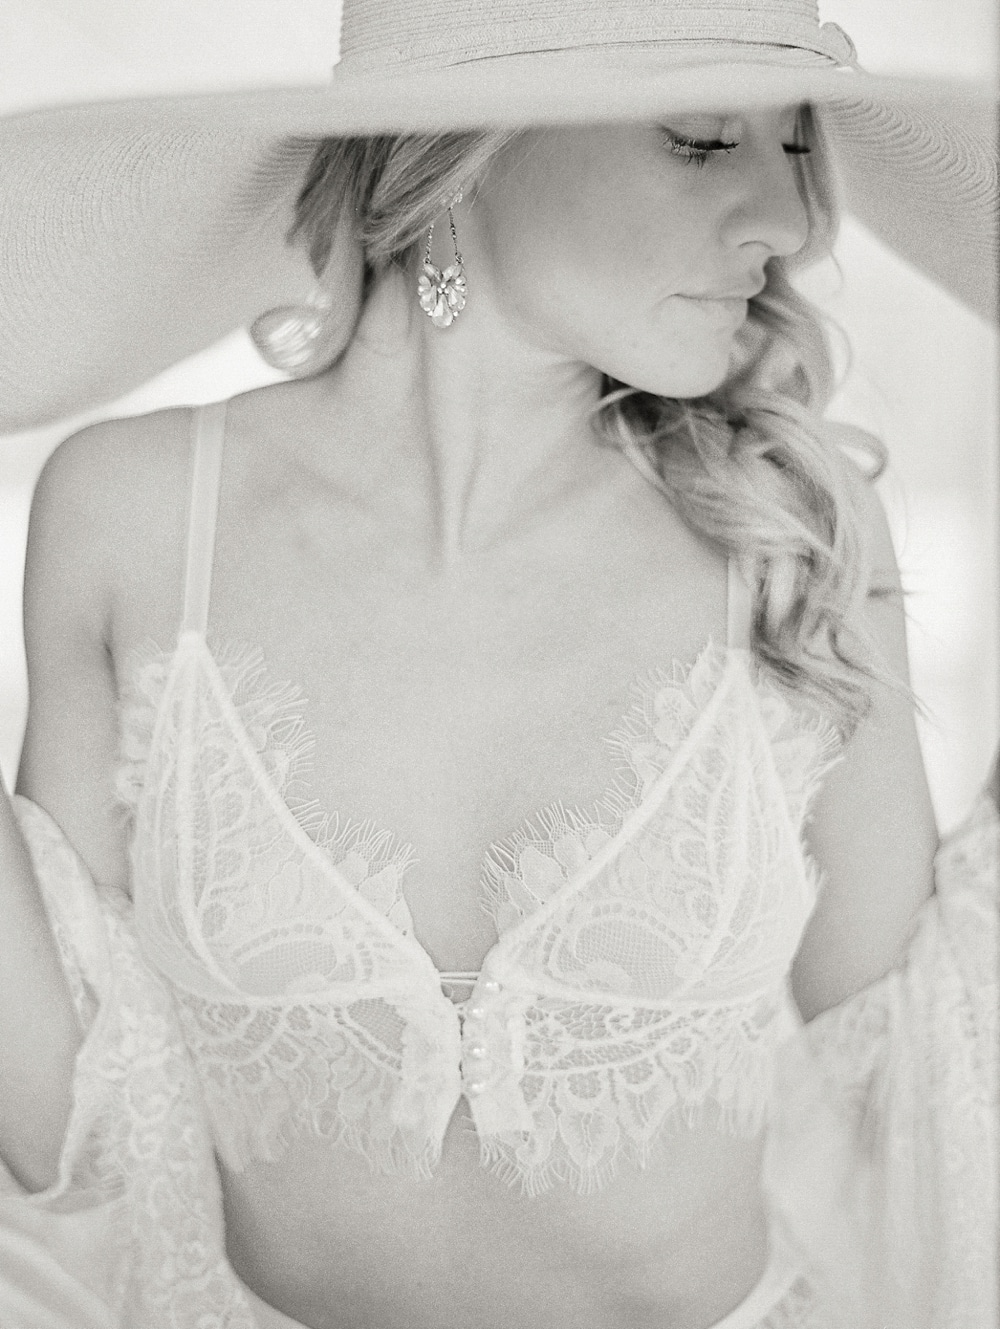 Kristin-La-Voie-Photography-fine-art-wedding-boudoir-texas-photographer-Dallas-Austin-San-Marcos-55